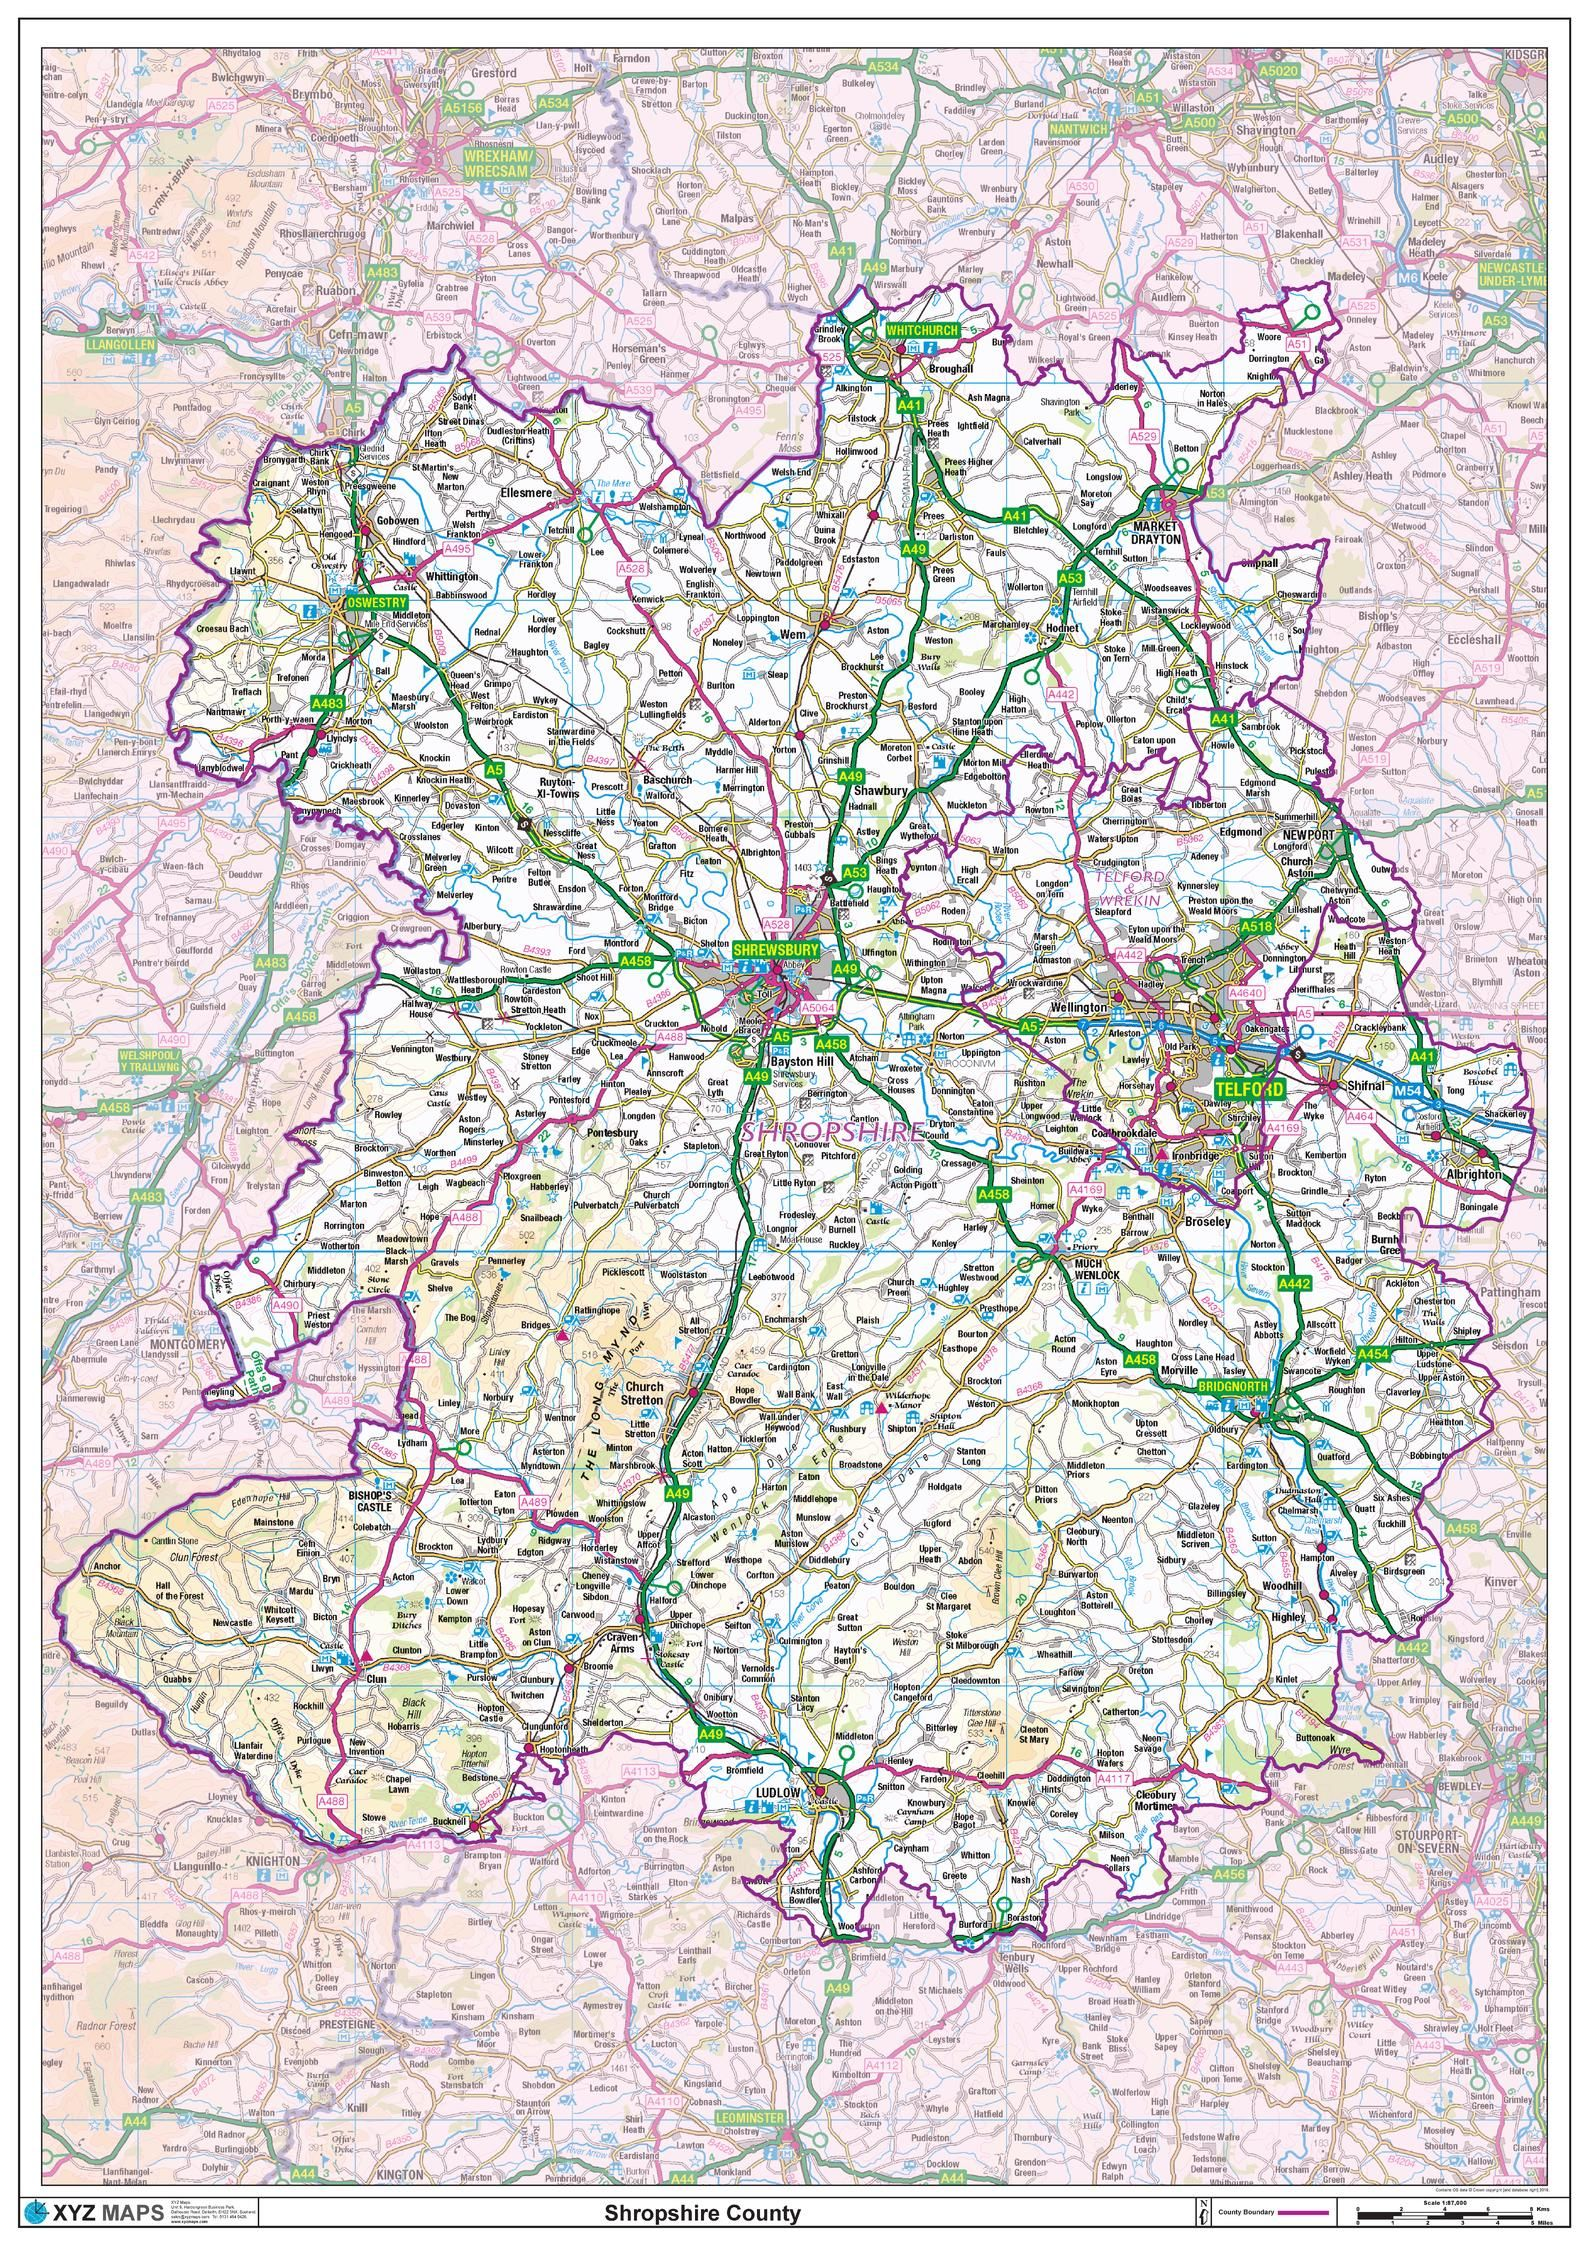 Picture of: Shropshire County Map